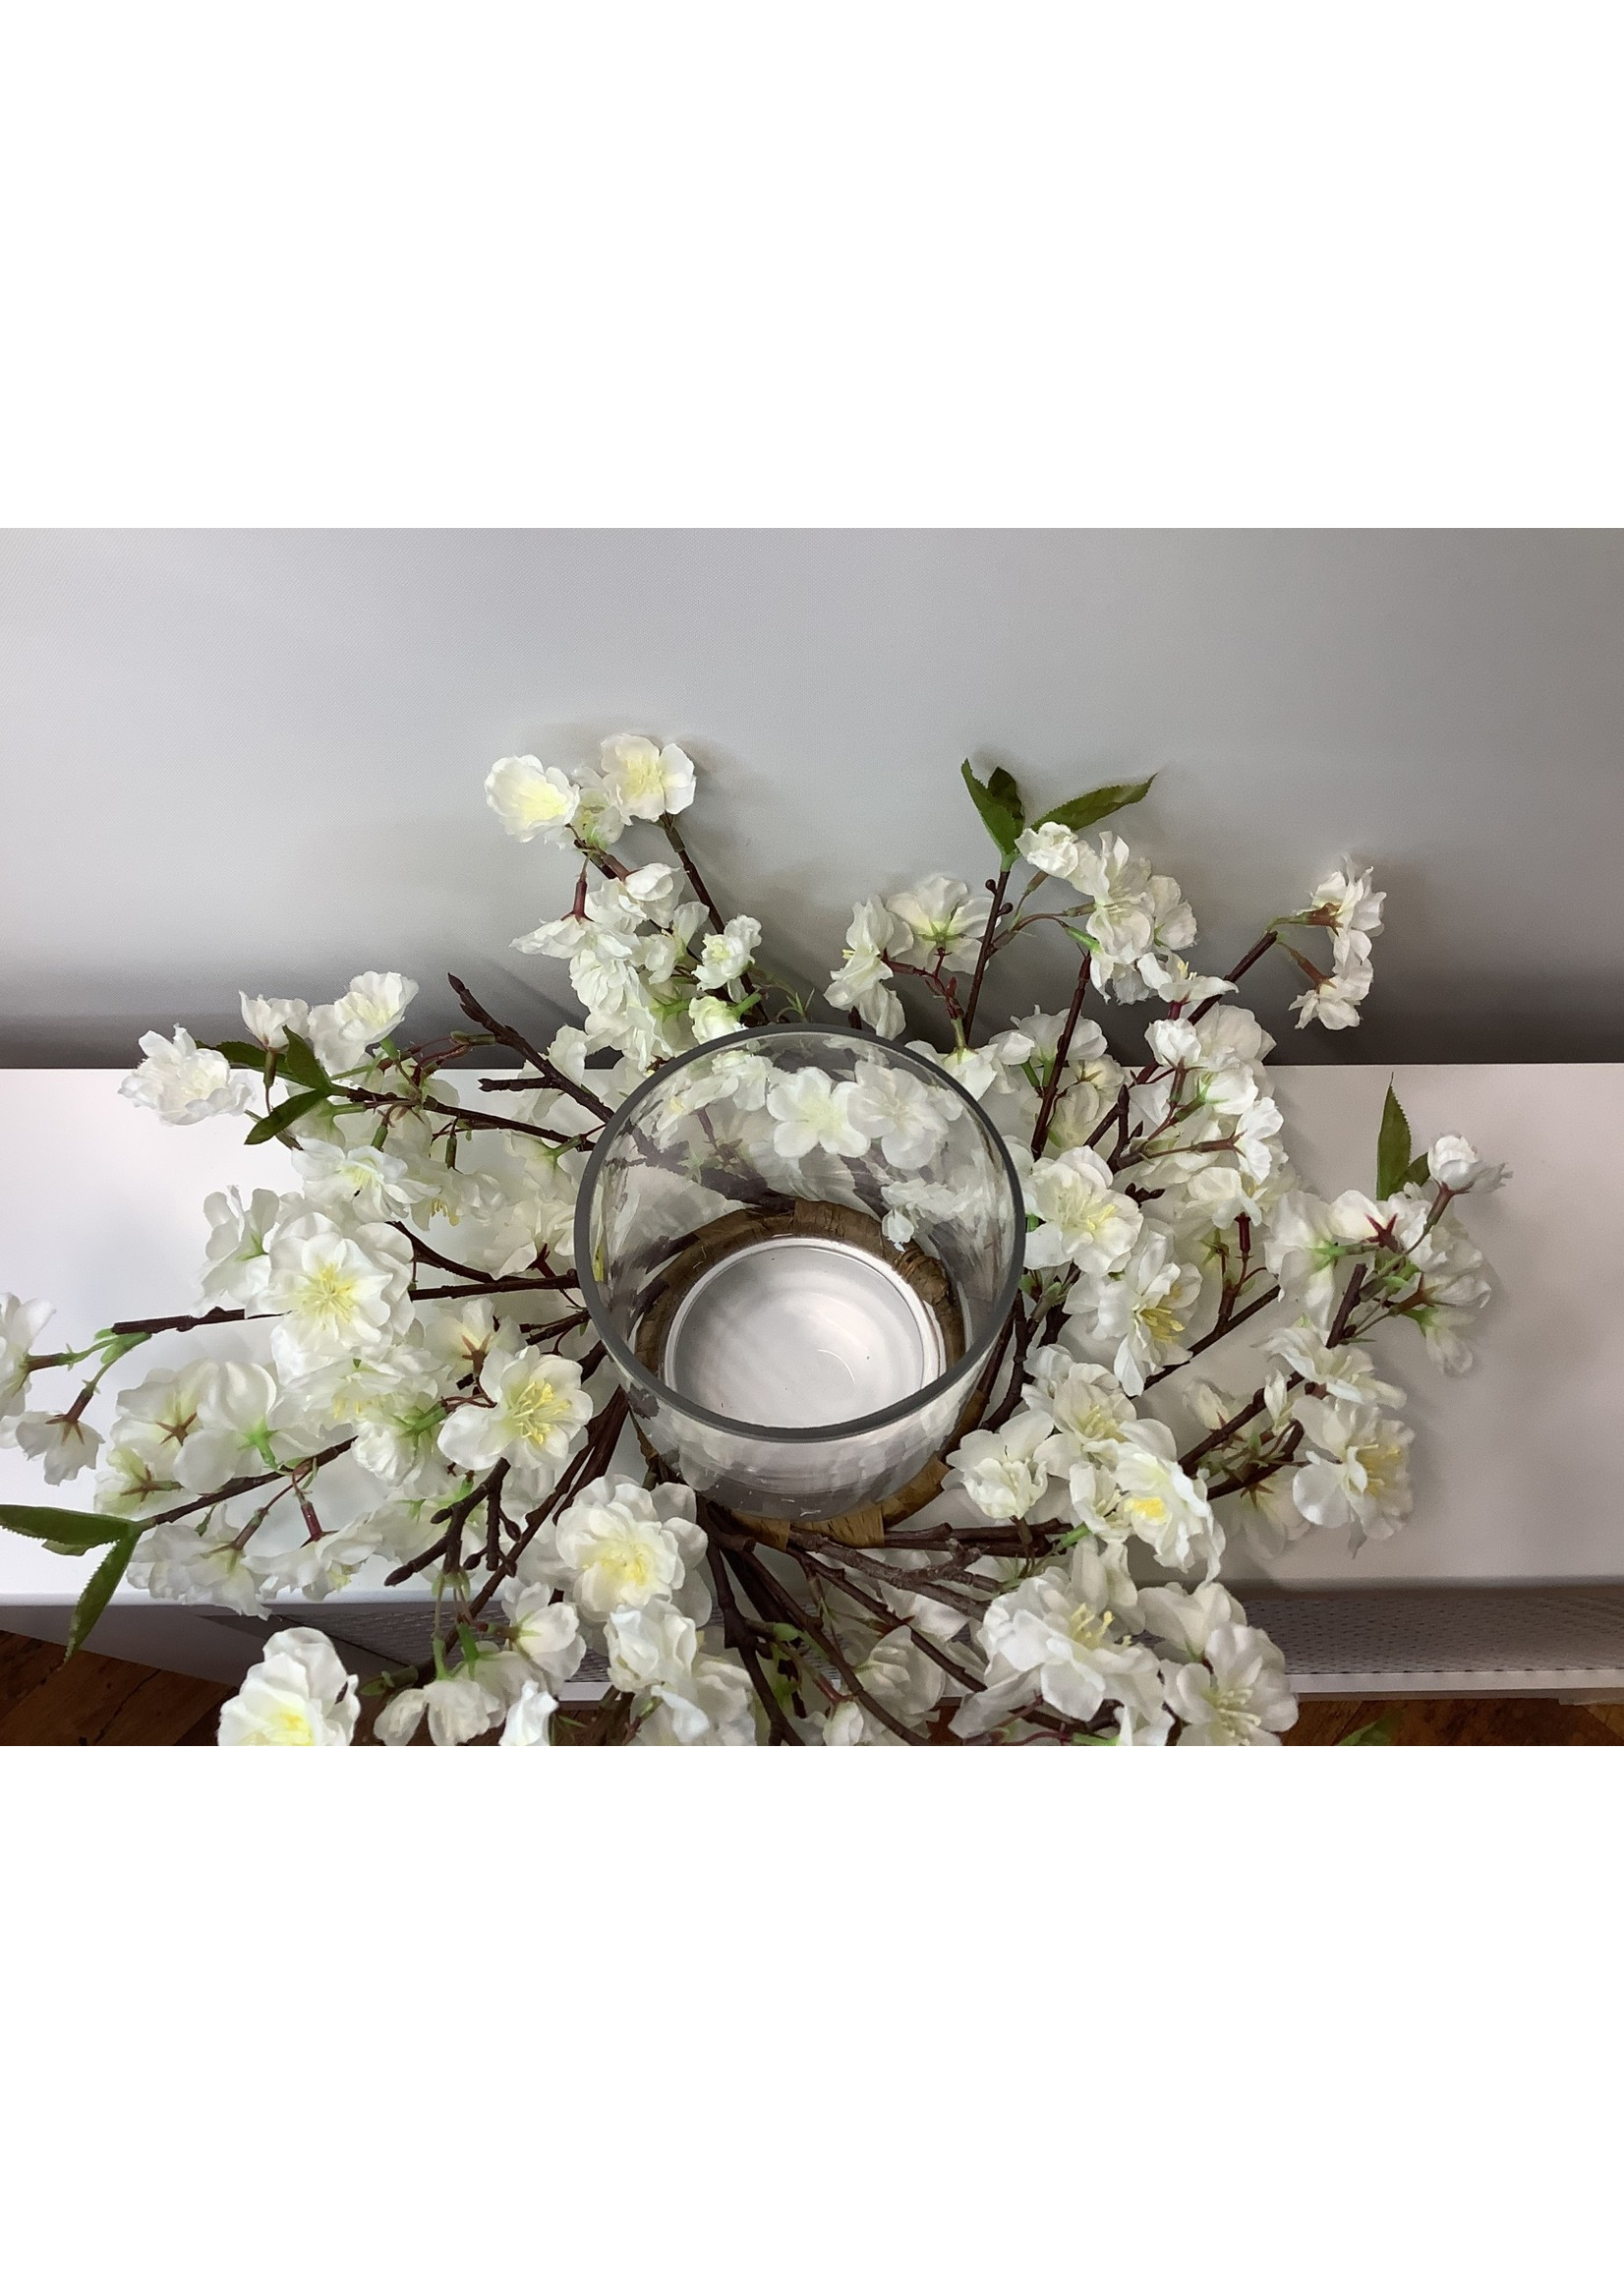 Cherry blossom candle holder 45cm wide